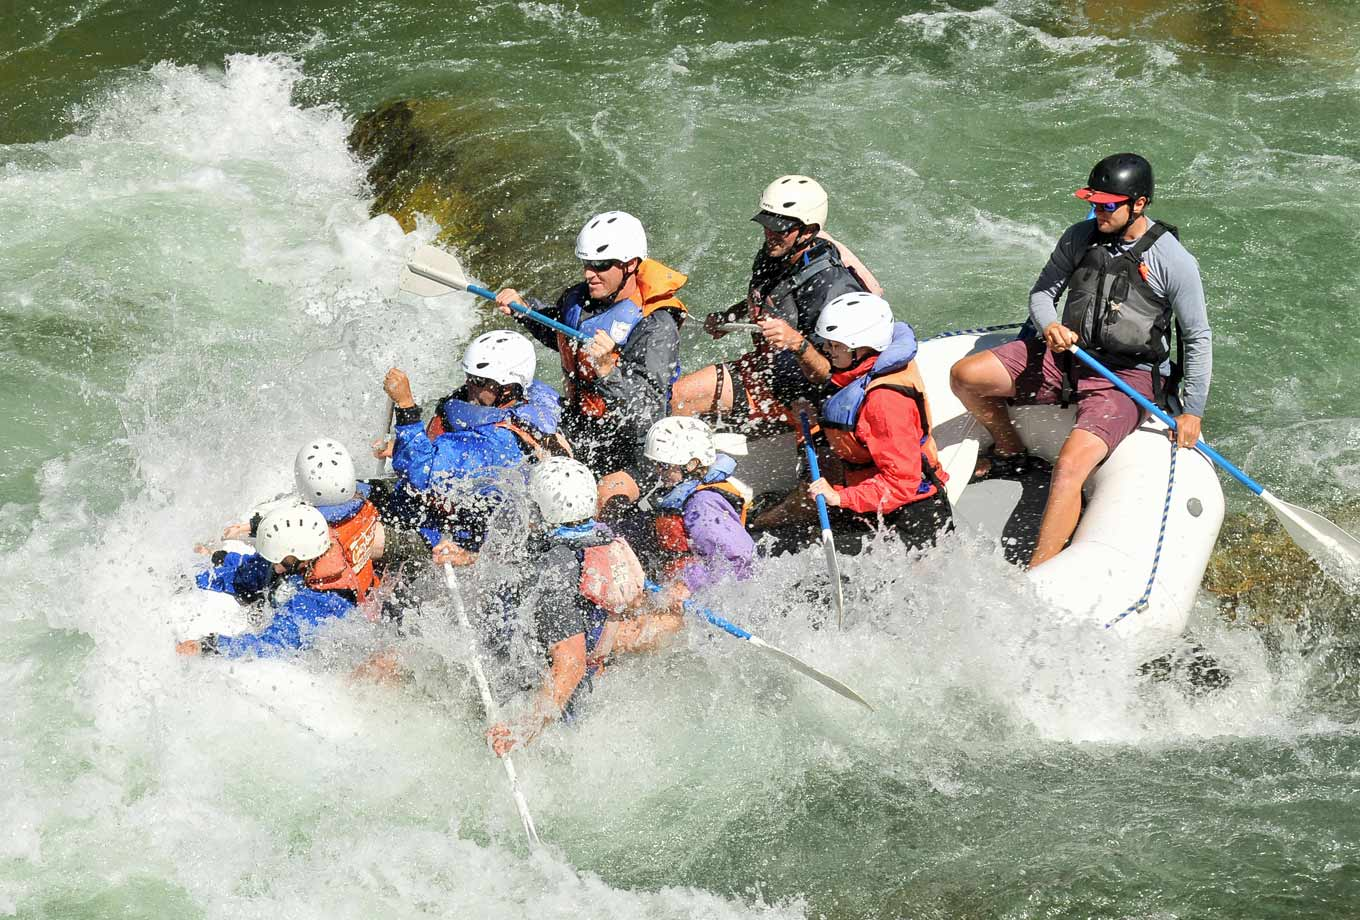 Yellowstone National Park whitewater rafting